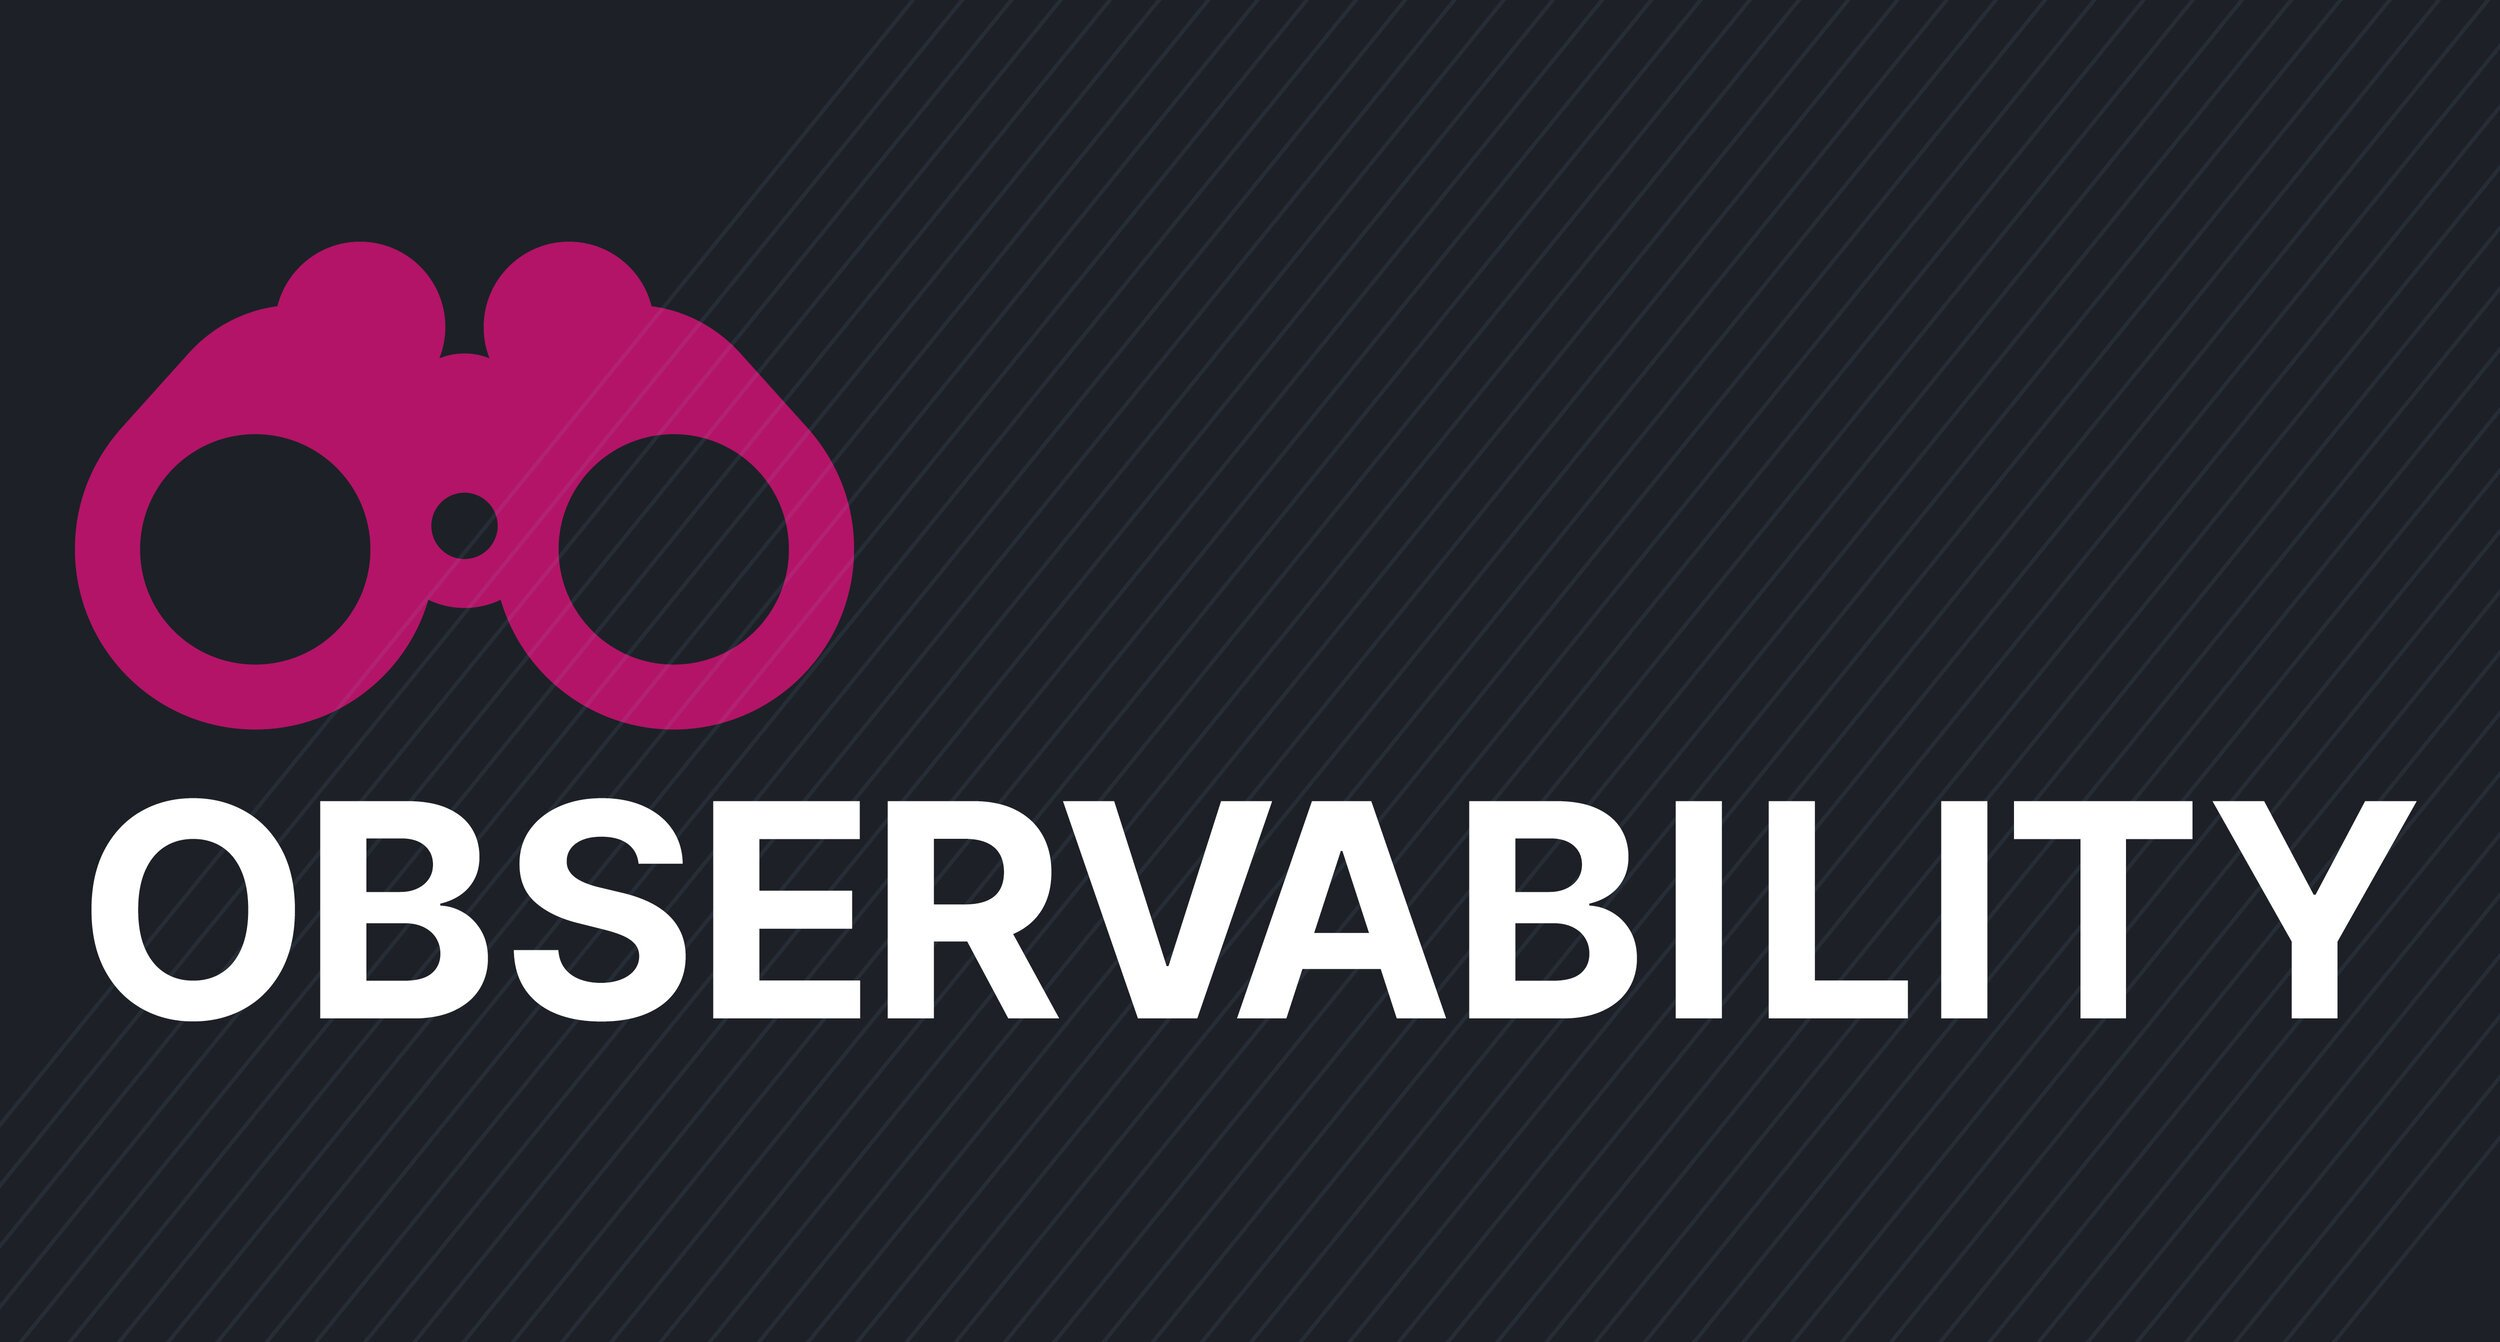 Observability: What is it, and why does it matter?